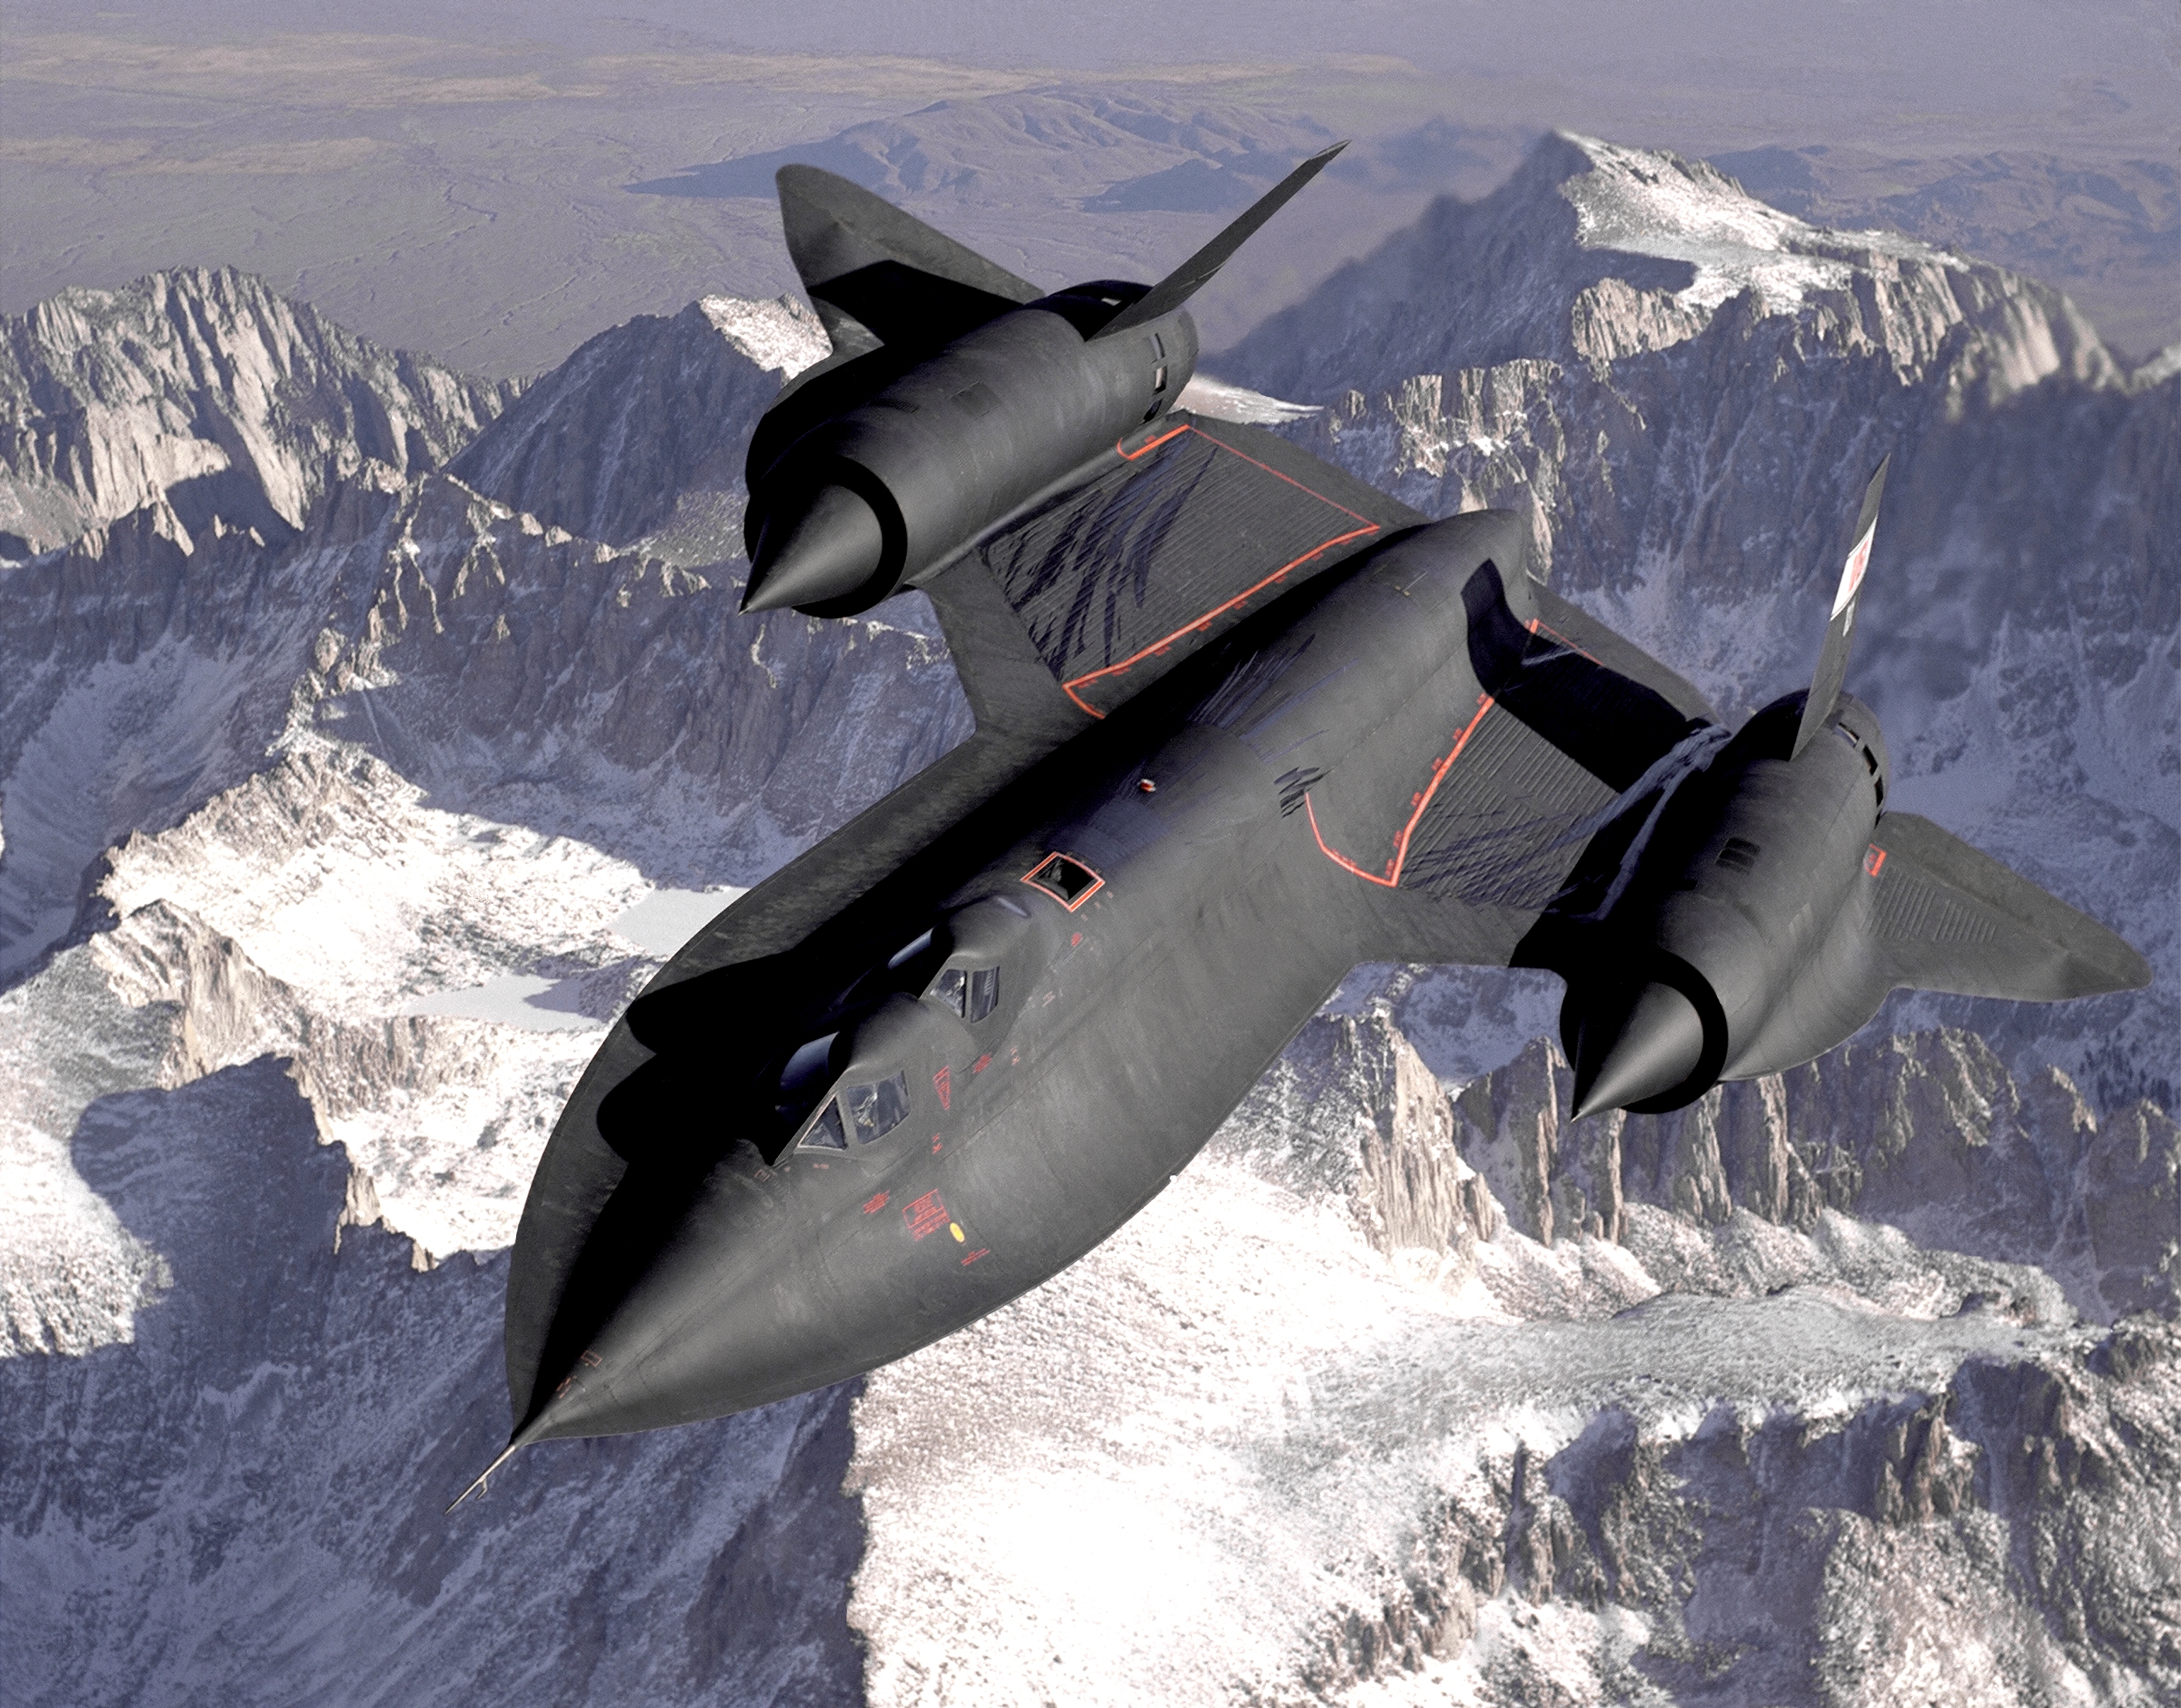 http://aparejodefortuna.files.wordpress.com/2009/02/lockheed_sr-71_blackbird.jpg